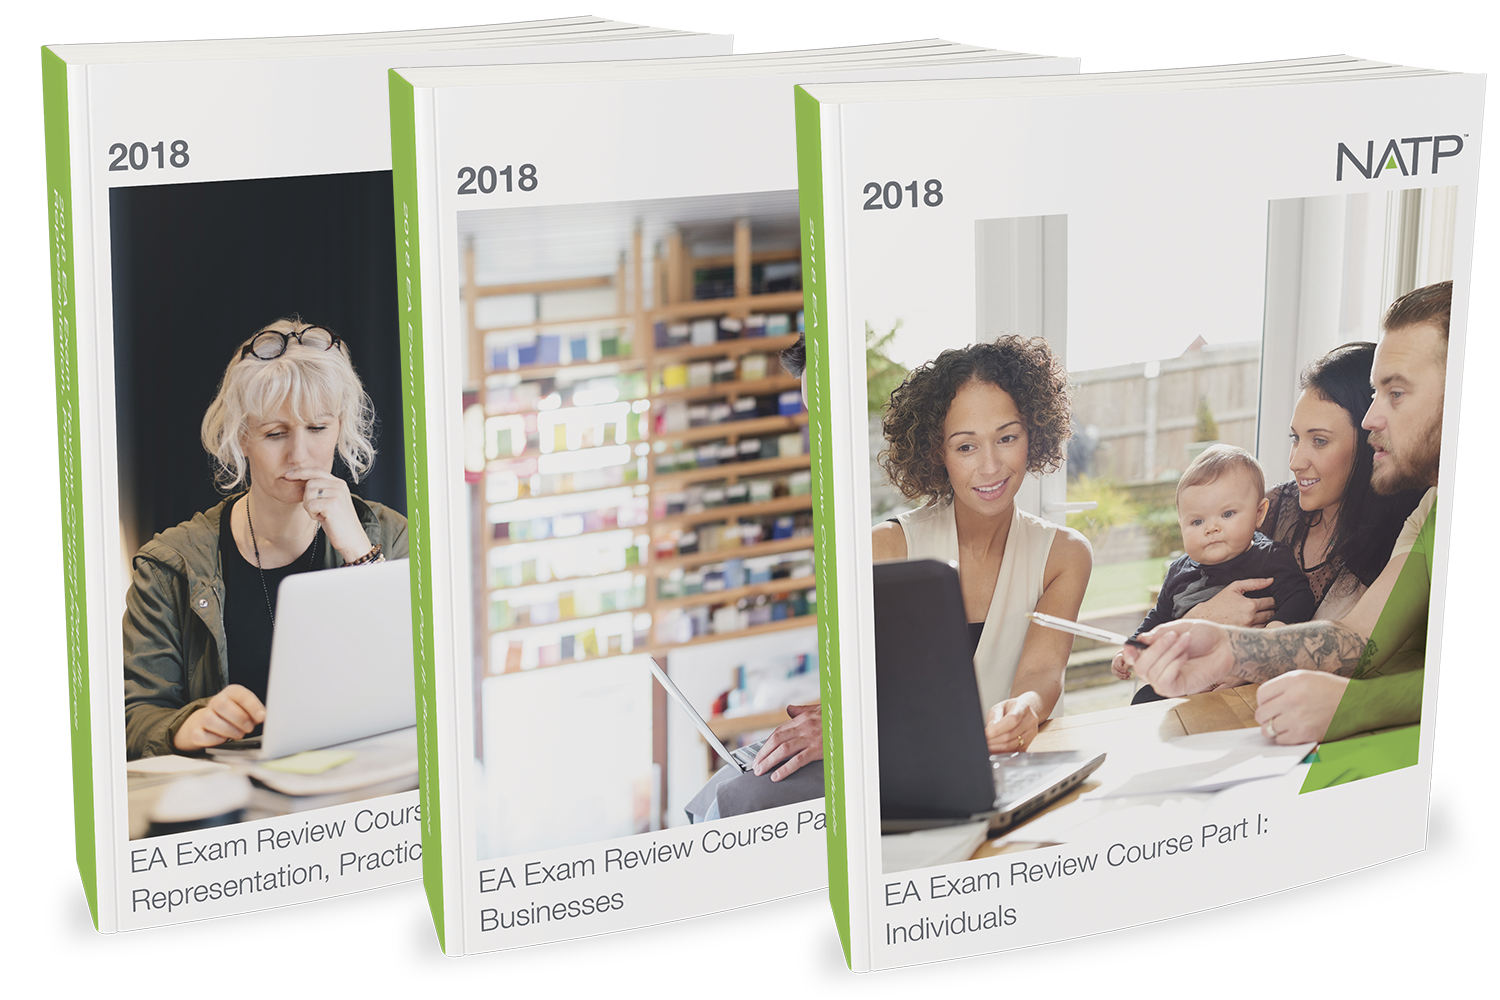 EA Exam Review Course Textbooks – All 3 Parts (2018) - #3806